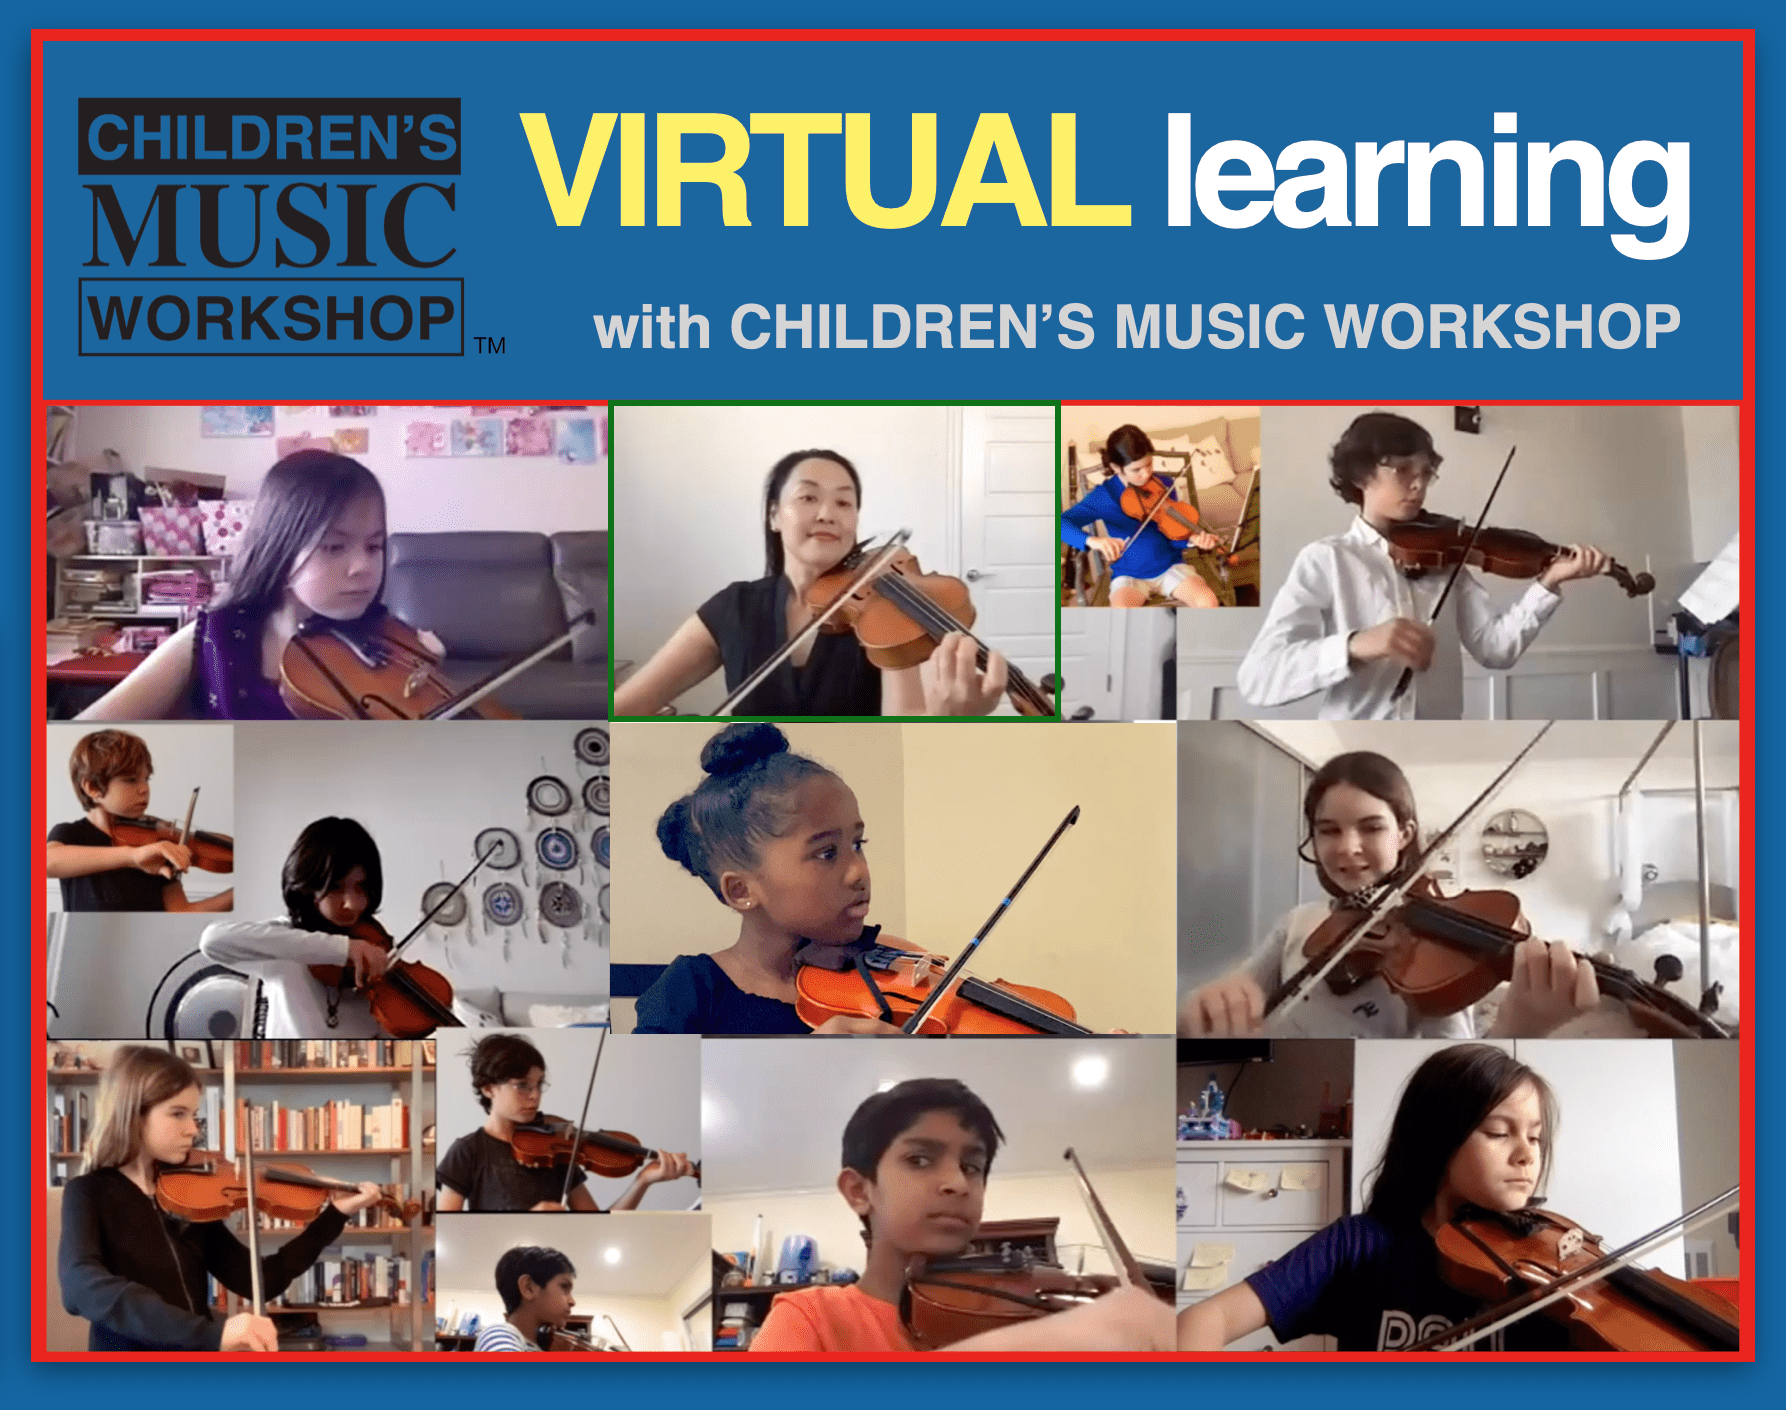 Online virtual flute lessons, Online virtual clarinet lessons, Online virtual sax lessons, Online virtual trumpet lessons, Online virtual trombone lessons, Online virtual french horn lessons,  Online virtual violin lessons, Online virtual viola lessons, Online virtual cello lessons, Online virtual recorder lessons, Online virtual piano lessons, Online virtual keyboard lessons, Online virtual ukulele lessons, Online virtual guitar lessons, Online virtual singing lessons